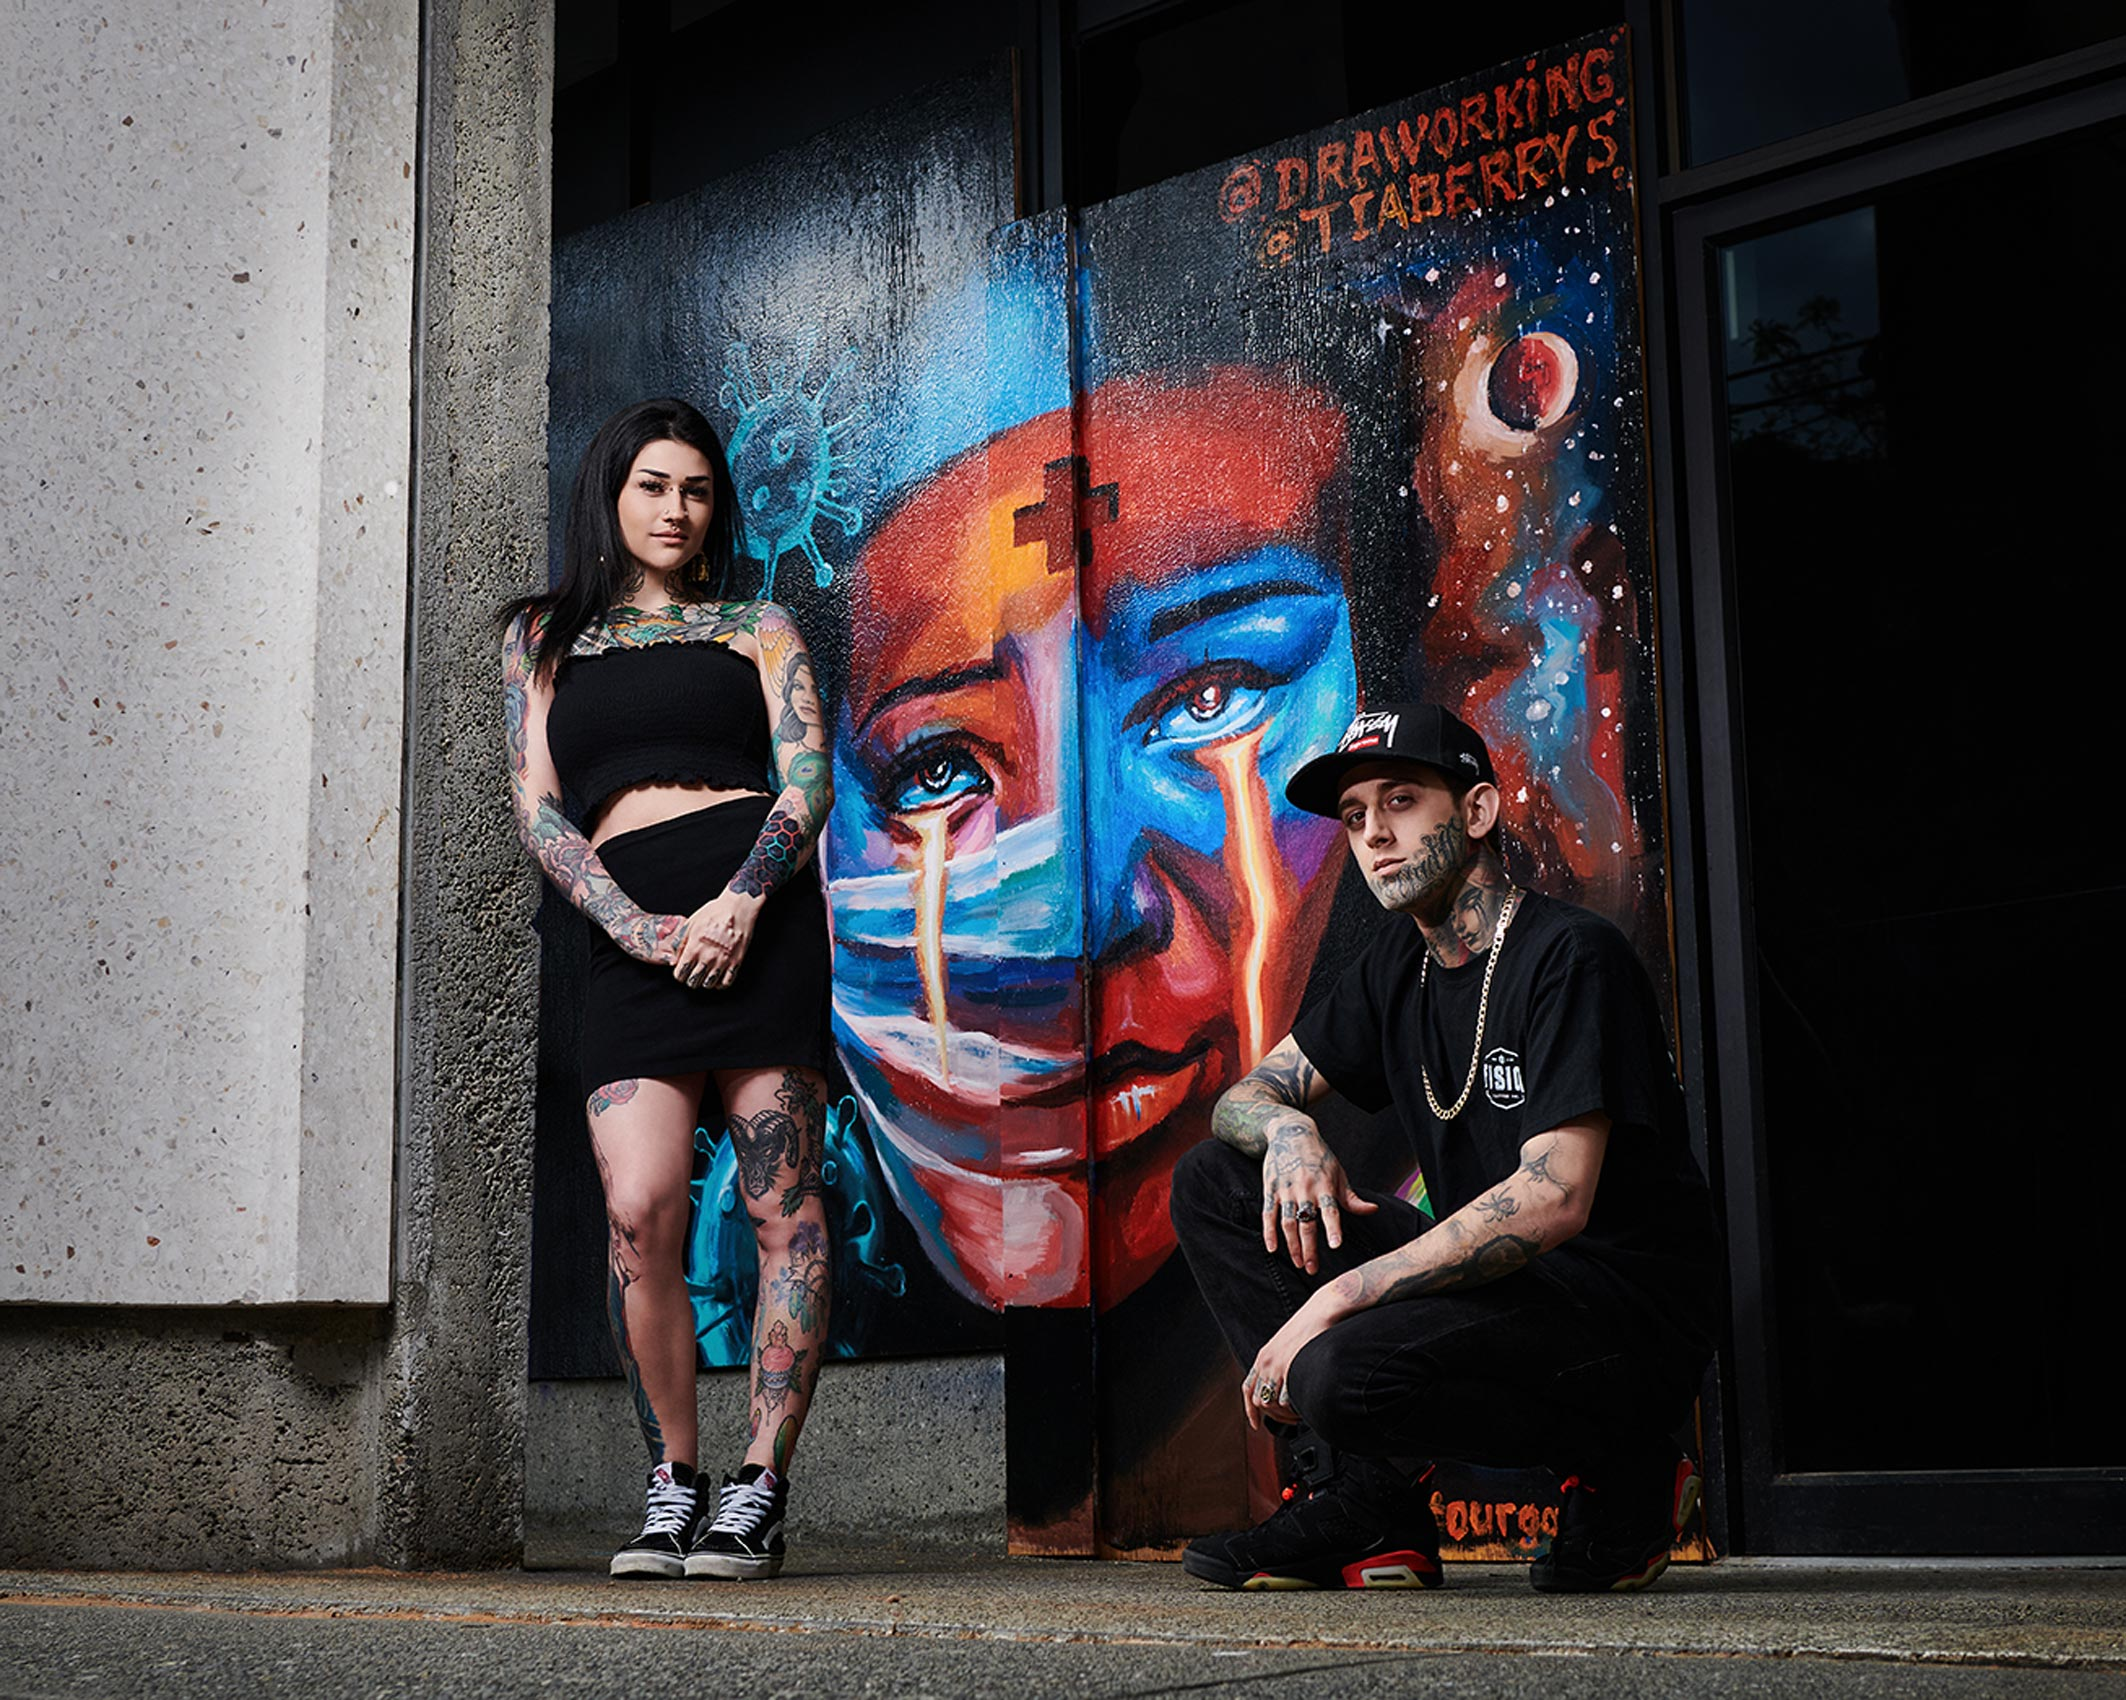 2020-Pandemic-Murals-of-Gratitude-Gastown-Vancouver-Art-Personal-Project-Erich-Saide-Photographer-Artists-Tia-Berry-Andrei-Draworking-Portrait